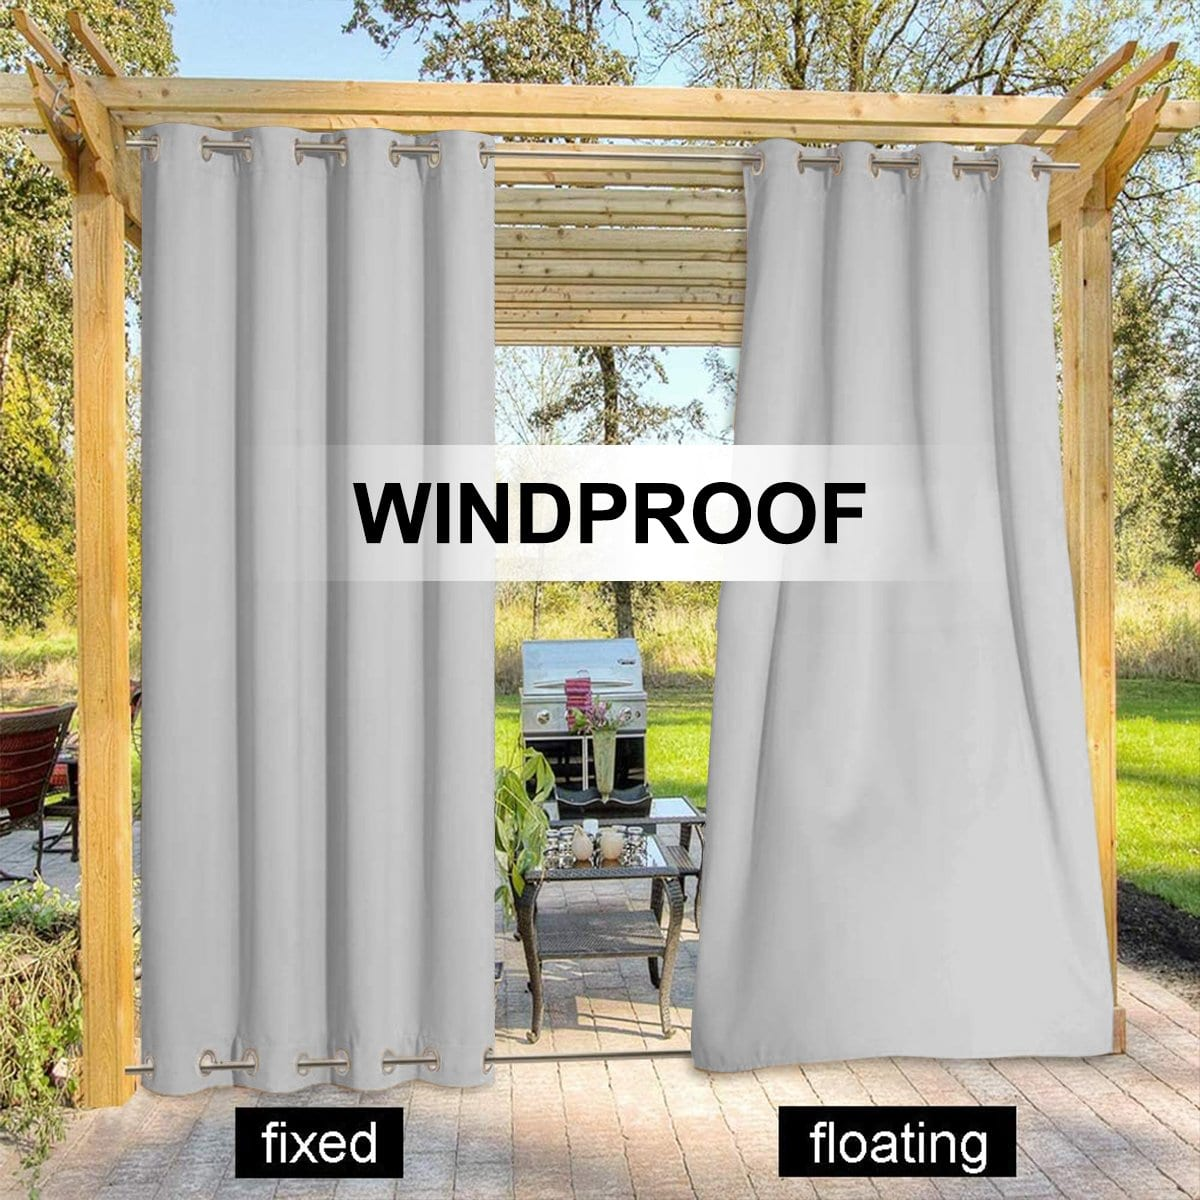 waterproof curtains for balcony